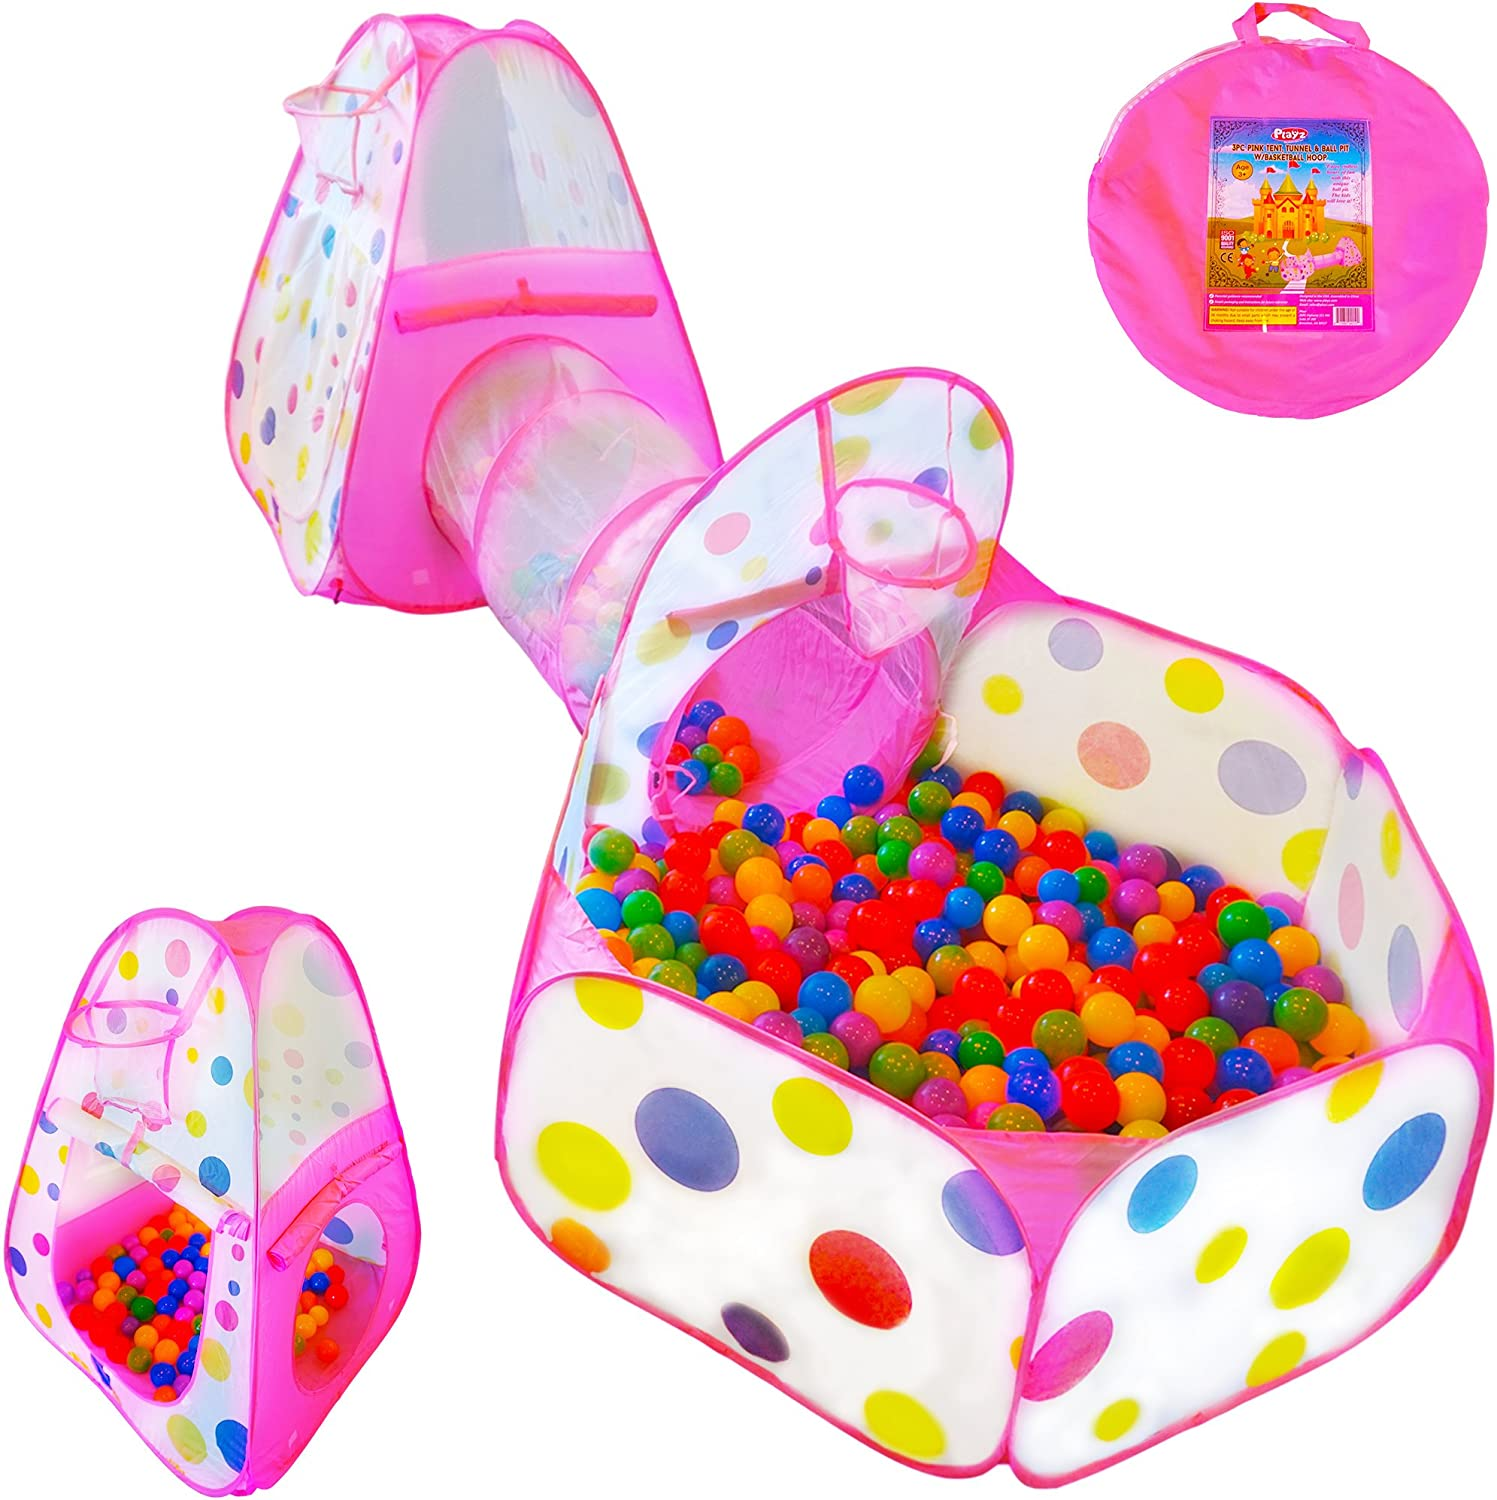 Playz 3pc Kids Play Tent Crawl Tunnel and Ball Pit Pop Up Playhouse Tent